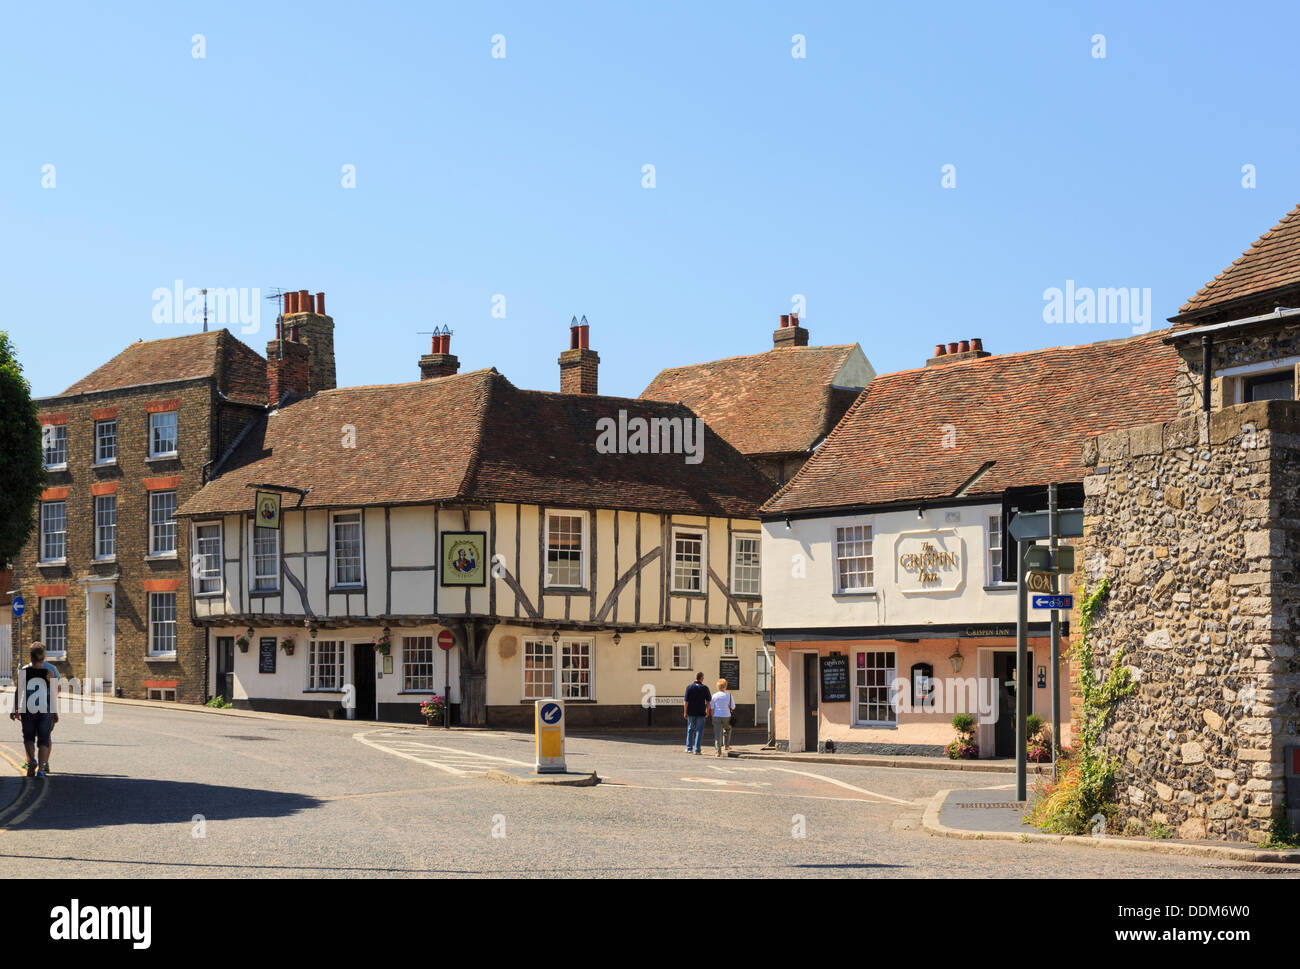 15th century Admiral Owen pub and 16th century Crispin Inn in historic town. High Street, Sandwich, Kent, England, UK, Britain - Stock Image